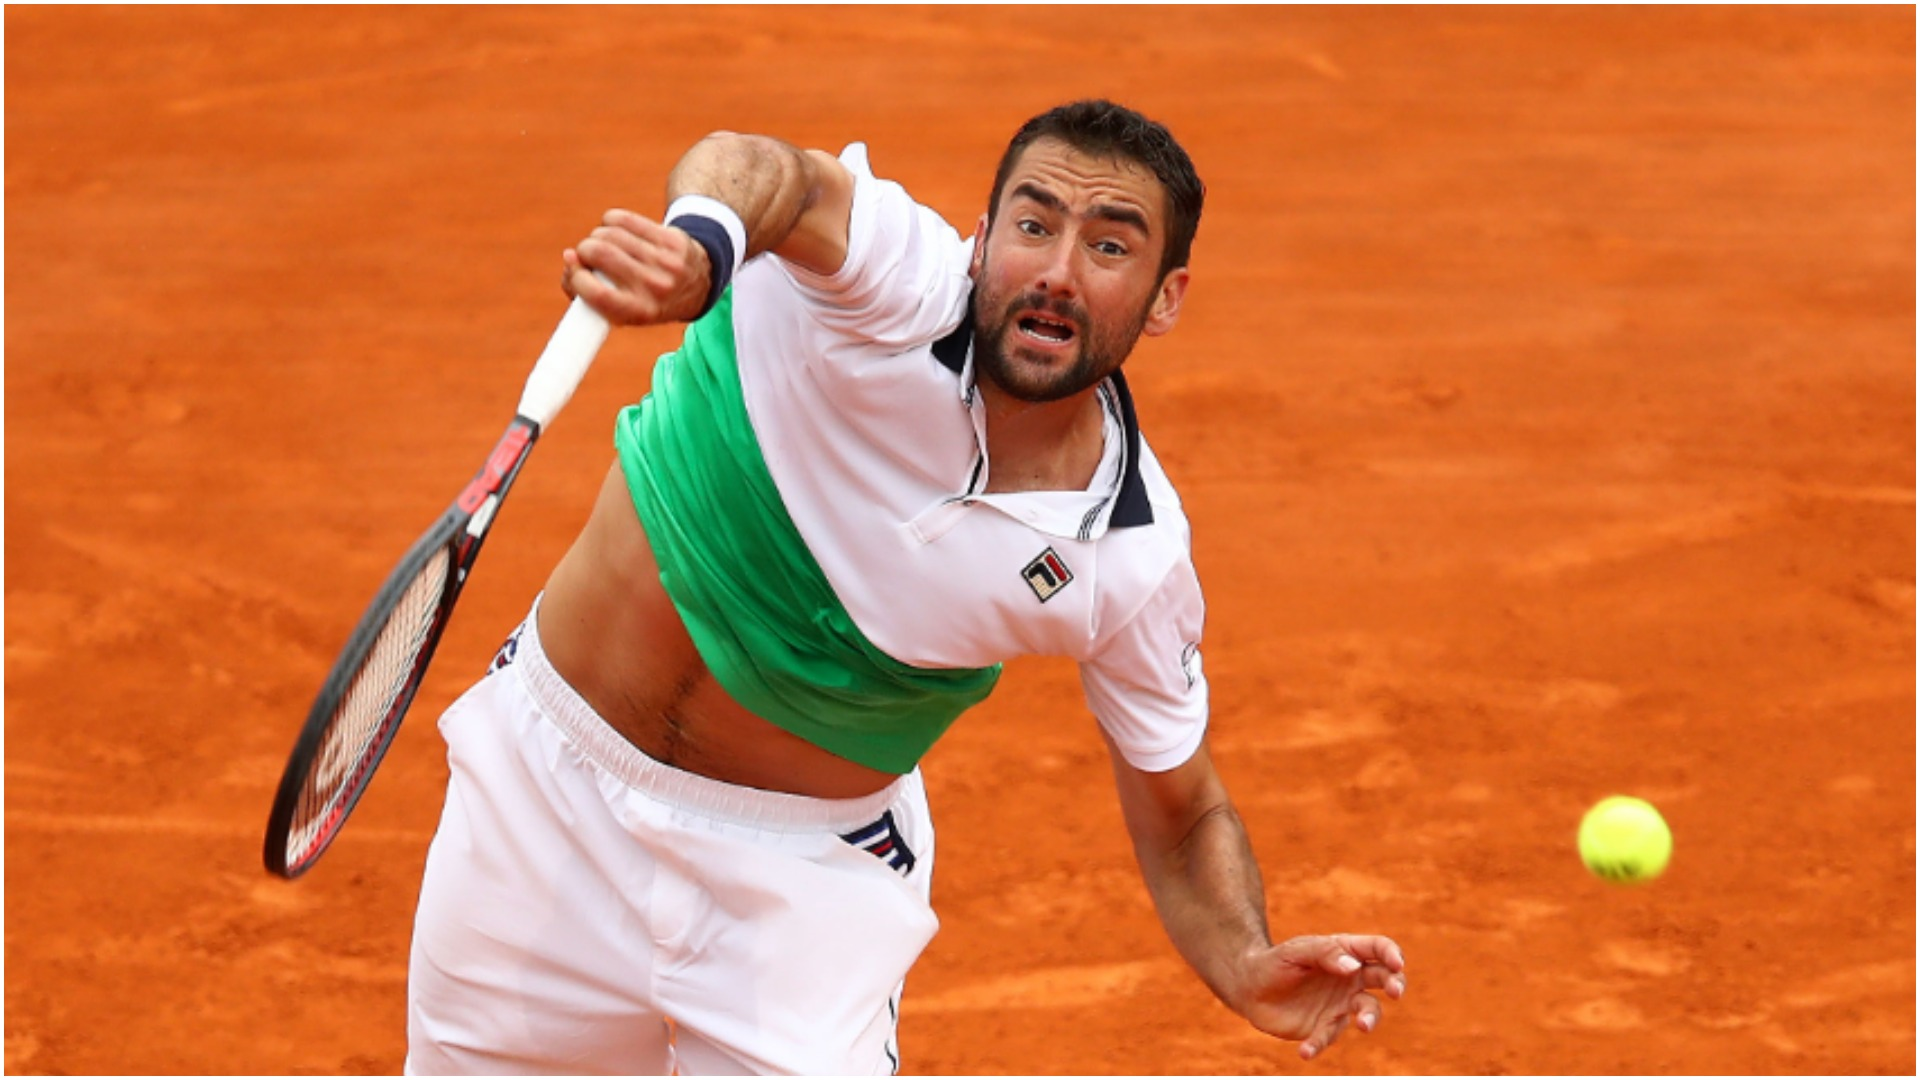 'Rusty' Djokovic through in Monte Carlo but Cilic comes unstuck